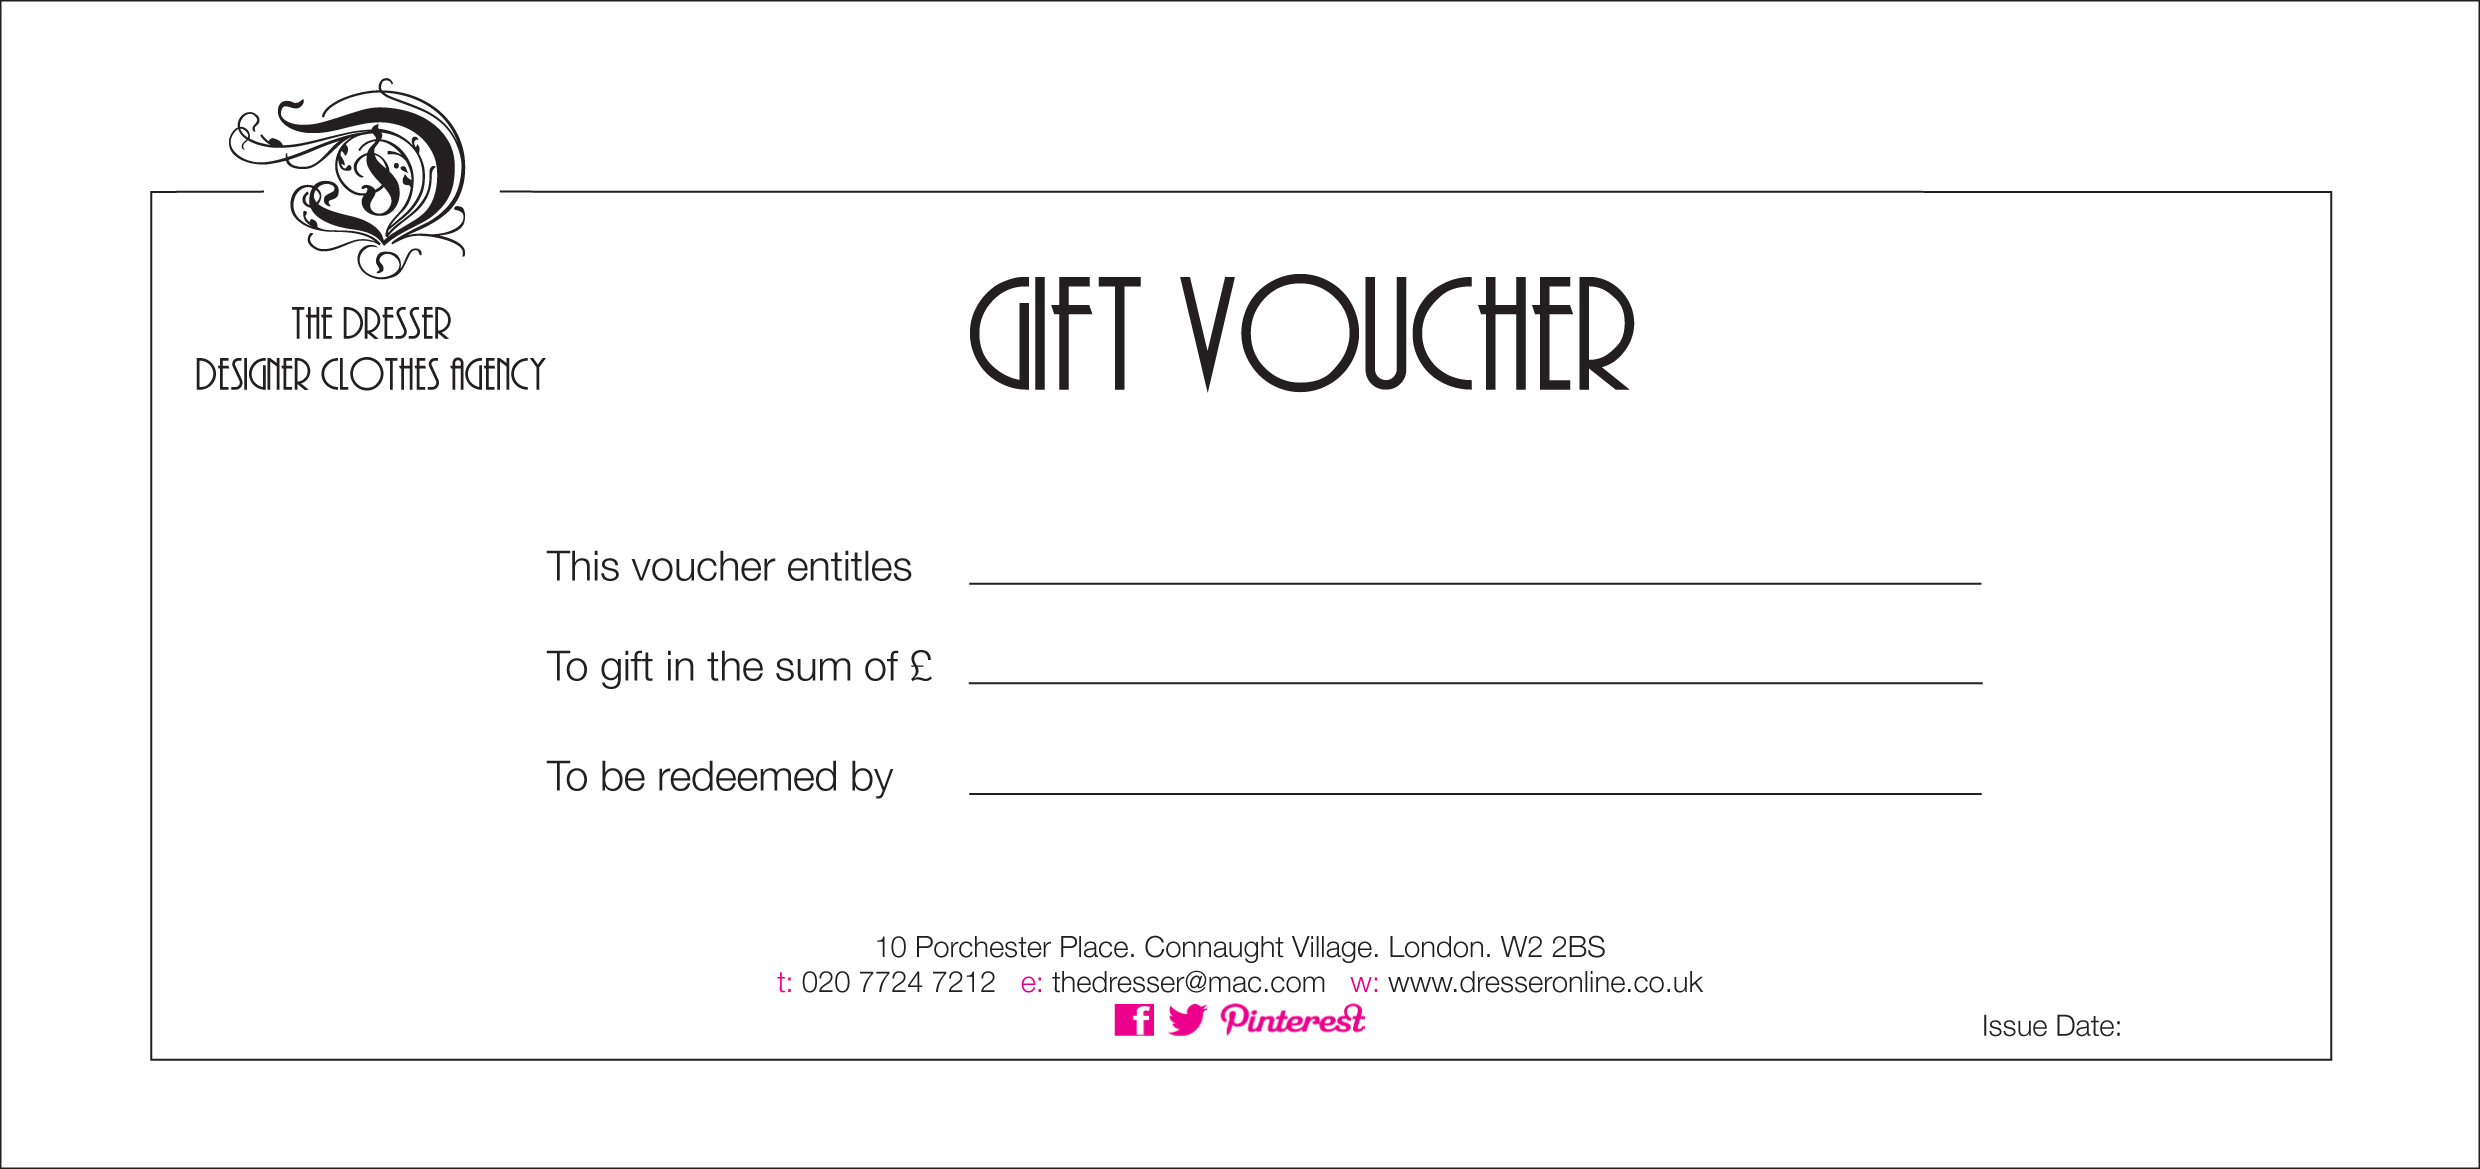 gift voucher template word free download planner template free. Black Bedroom Furniture Sets. Home Design Ideas